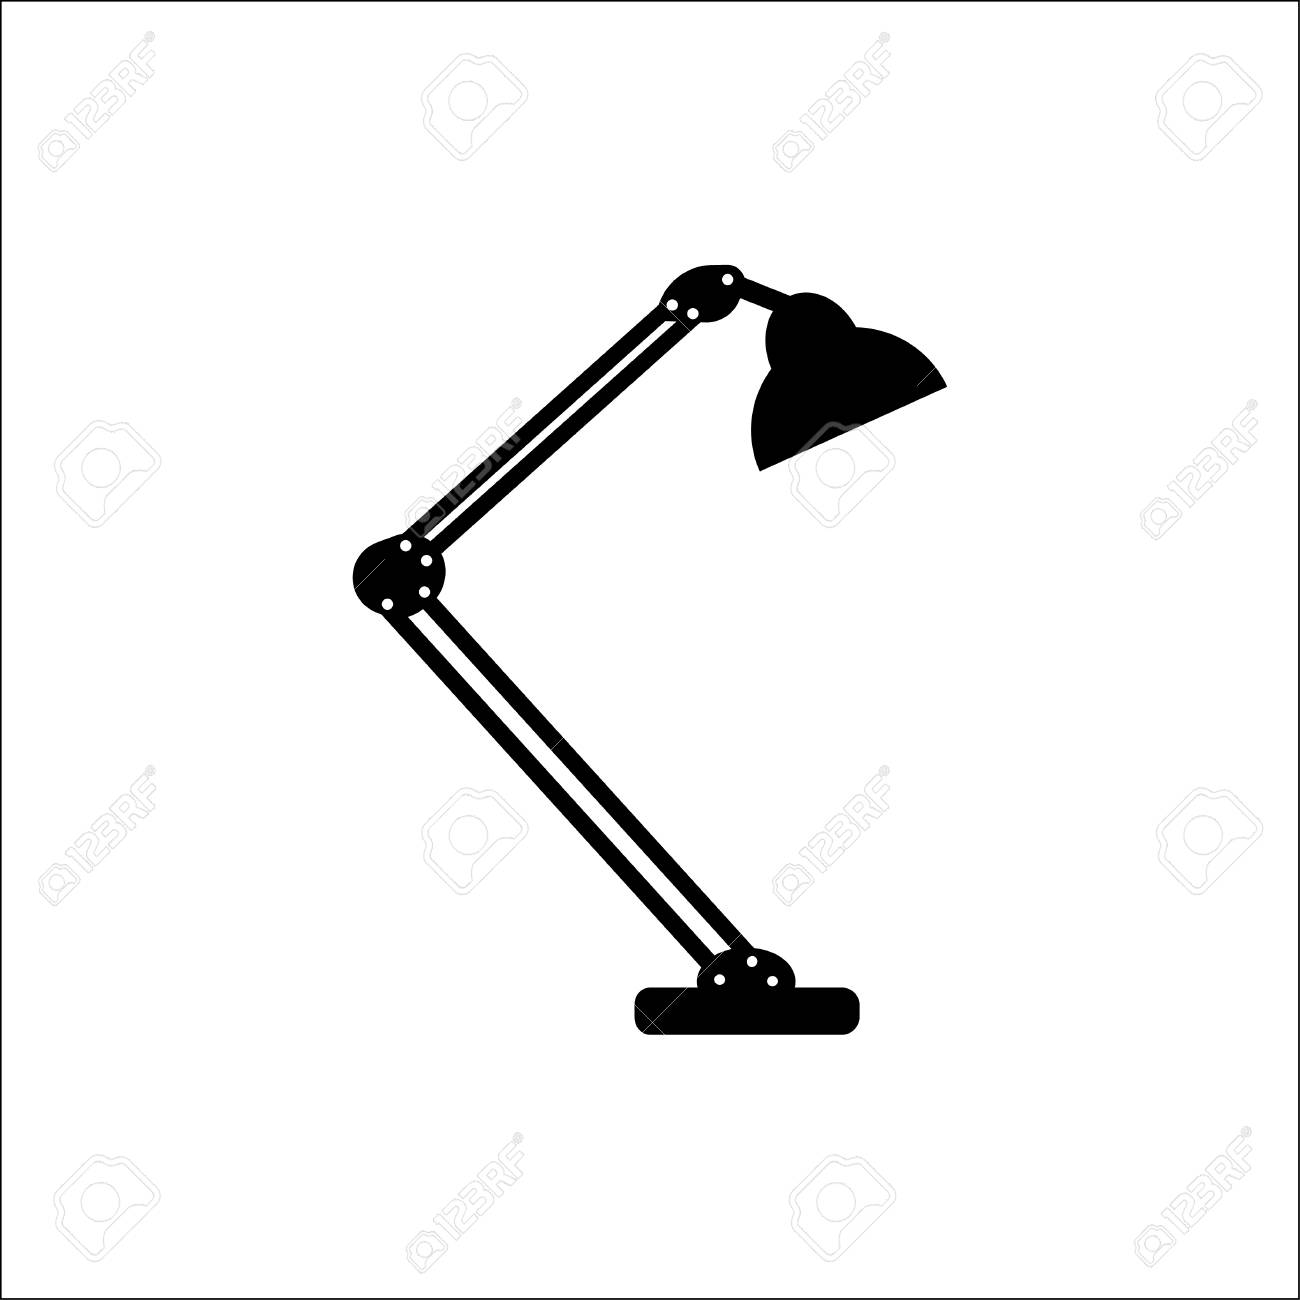 Table Lamp Modern Desk Lamp Vector Icon Royalty Free Cliparts